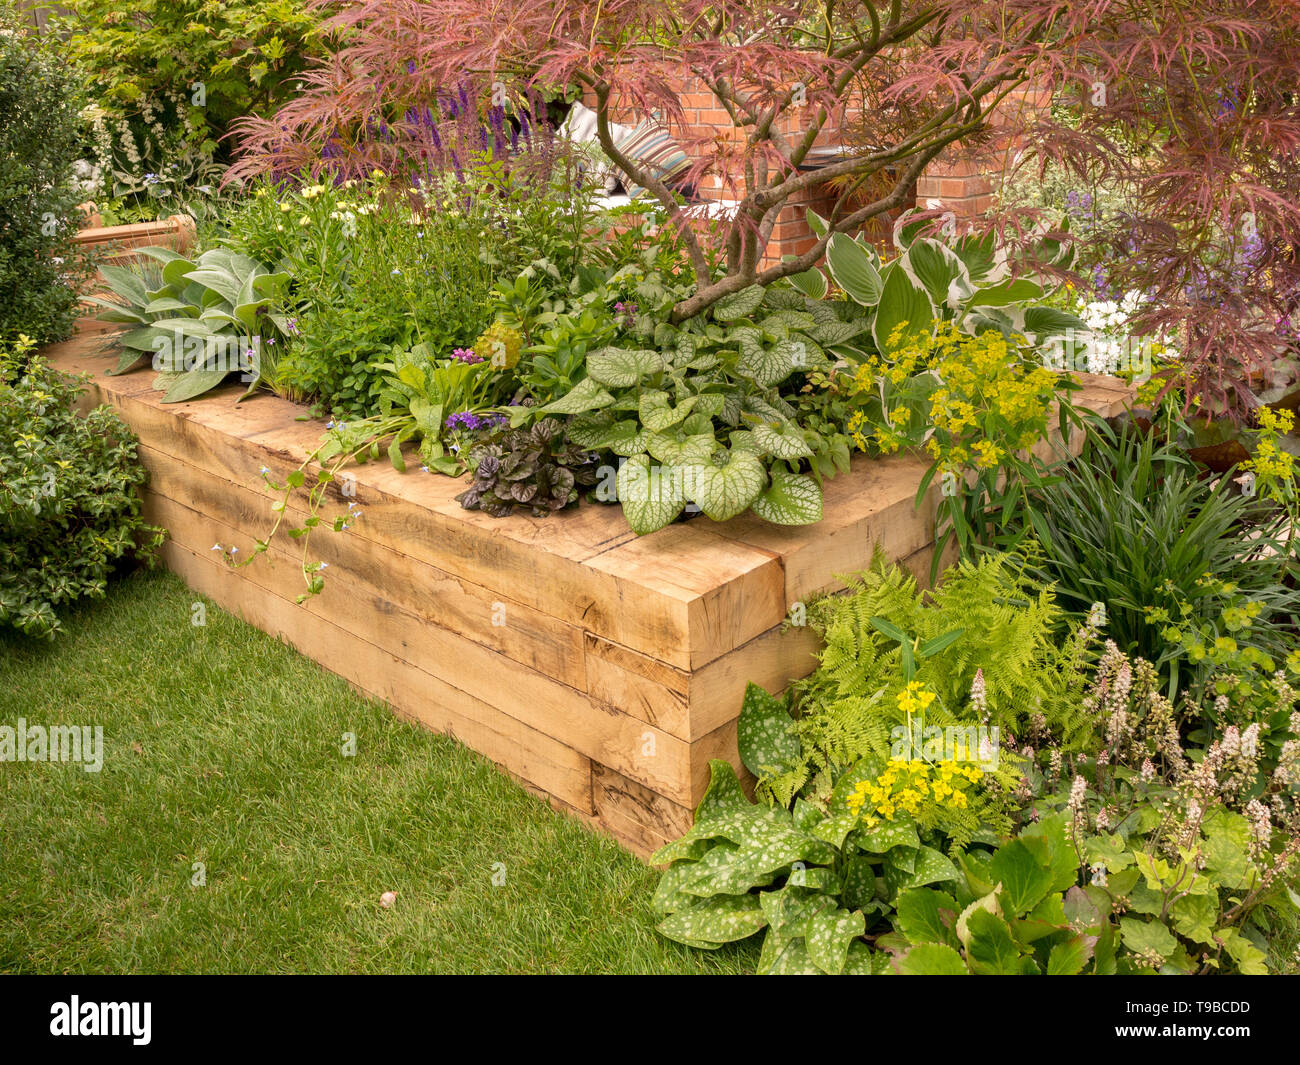 Raised bed in garden made from large timber pieces (new railway sleepers) - Stock Image